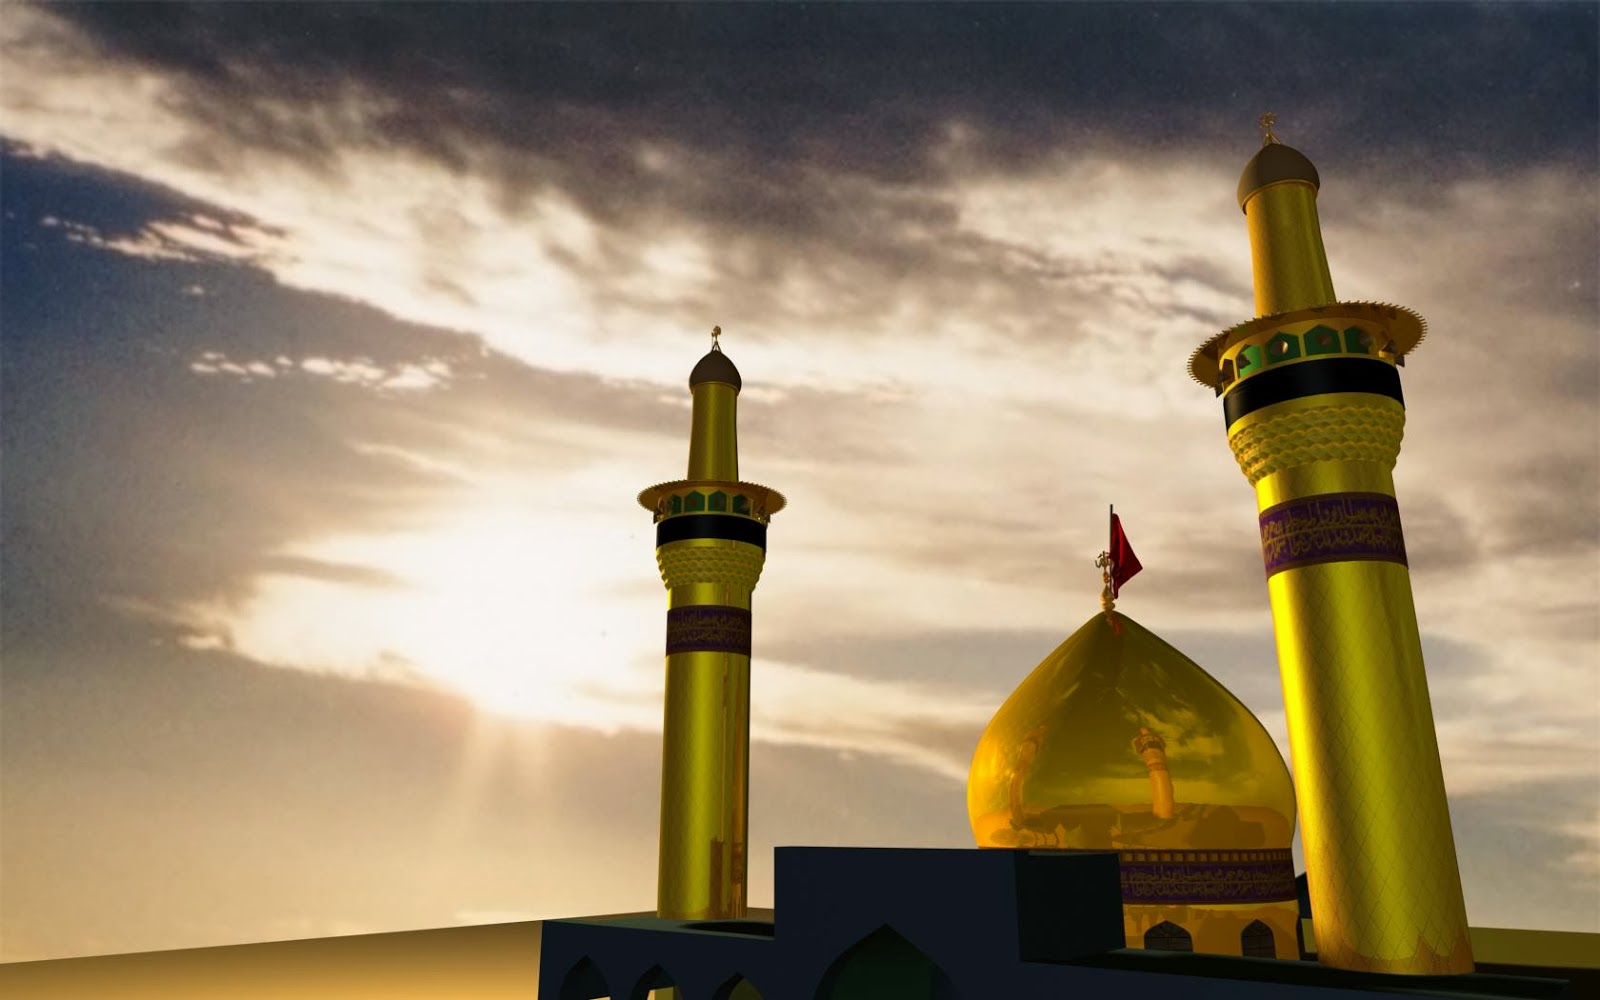 Hd wallpaper ya hussain - Animated Hd Wallpaper Of Shrine Of Imam Hussain A S